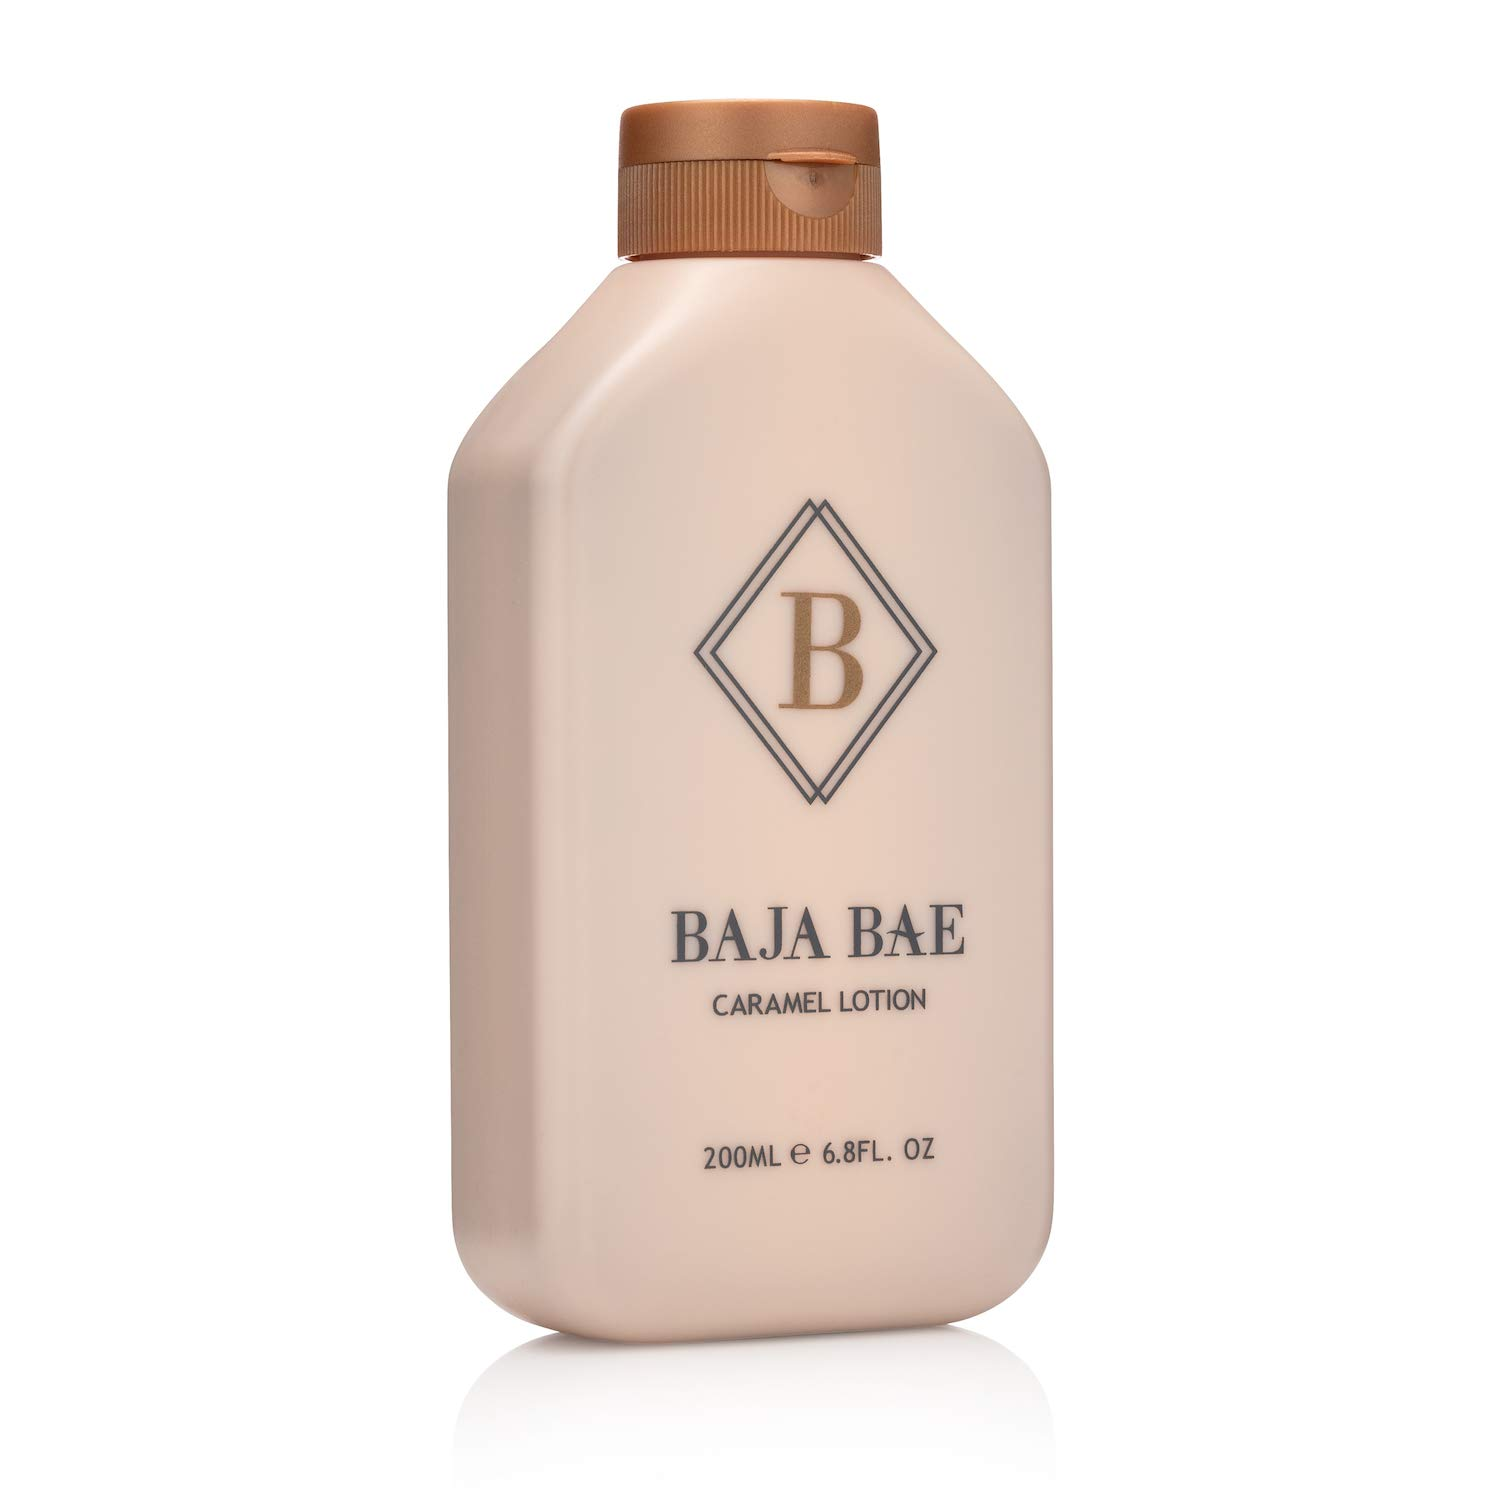 BAJA BAE Bronze Tanning Lotion for Indoor Tanning Beds - 3 in 1 Sunless Tanning Lotion, Tinted Moisturizer and Highlighting Face Tanner - Caramel Scent, 200ml by BAJA BAE